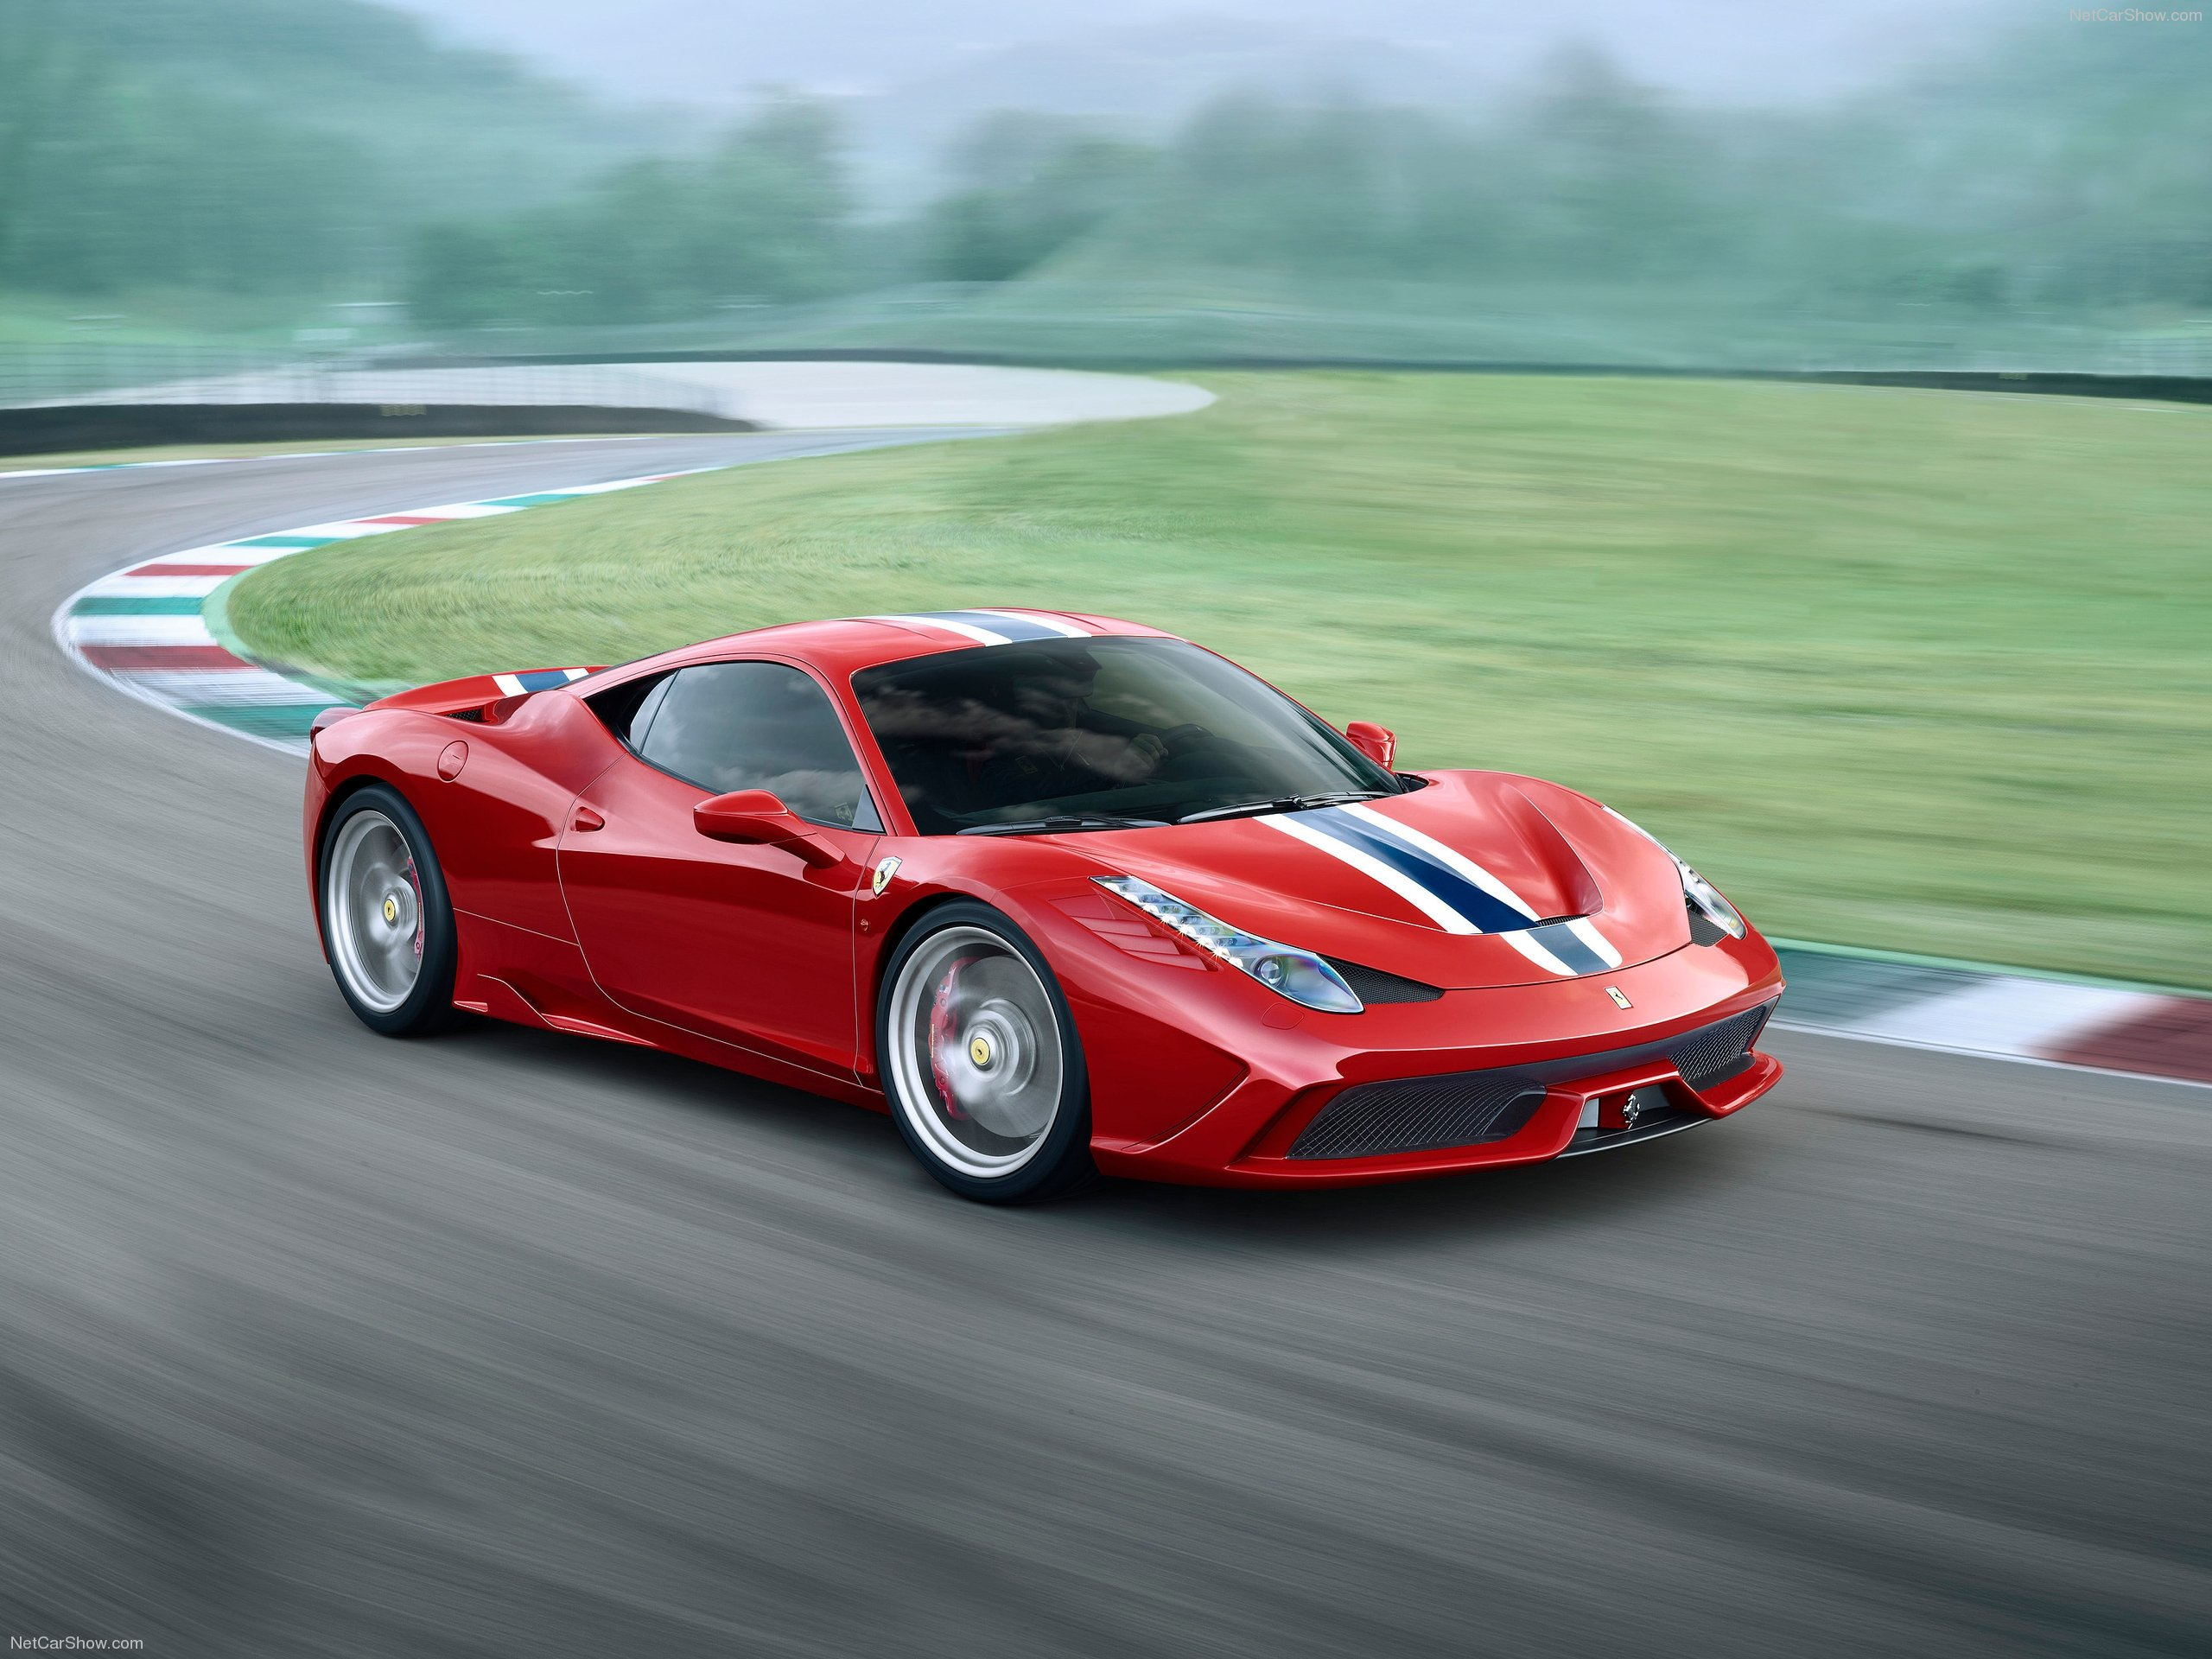 We are all very familiar with the 458 Italia, but this new Speciale has something fresh to bring to the table. Crammed with F1 technology, the Speciale's ...